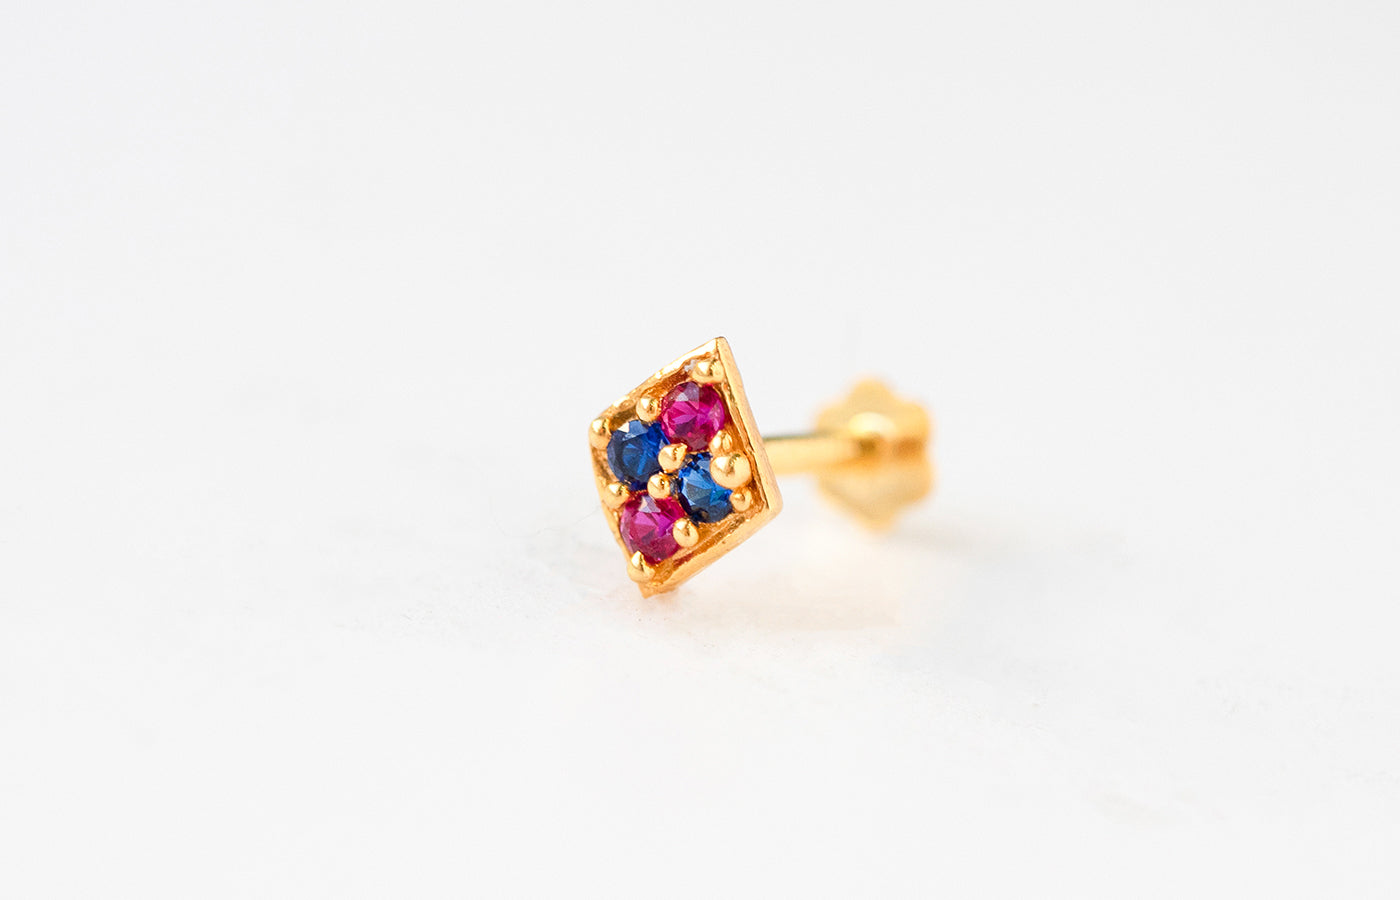 18ct Yellow Gold Screw Back Nose Stud set with two Red and two Blue Cubic Zirconias NIP-4-320d